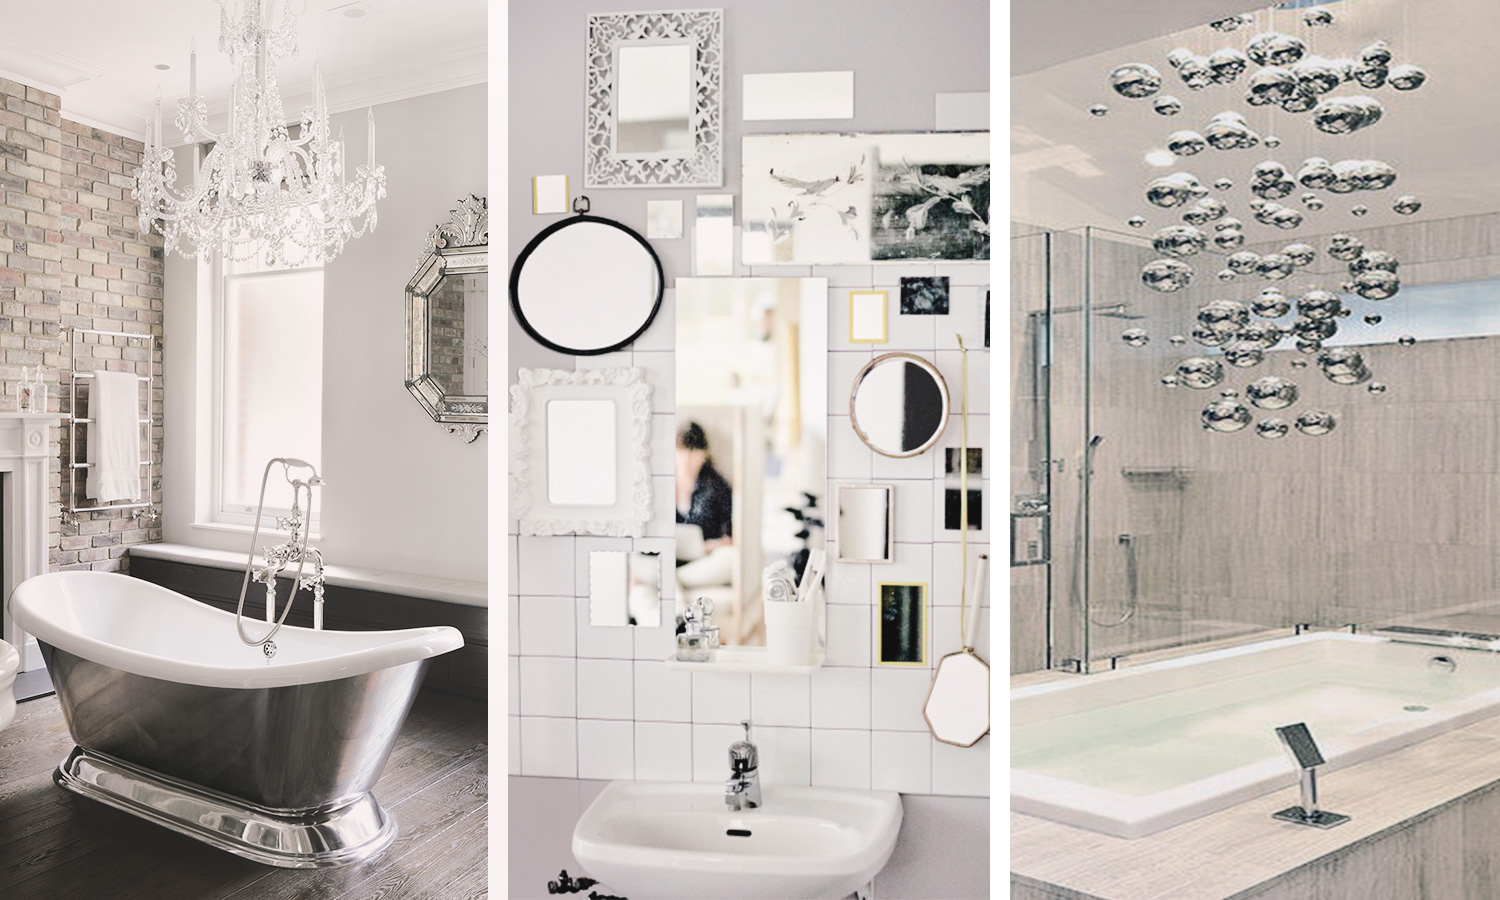 Bathroom inspiration glitz and glam eclectic home for Bathroom inspiration